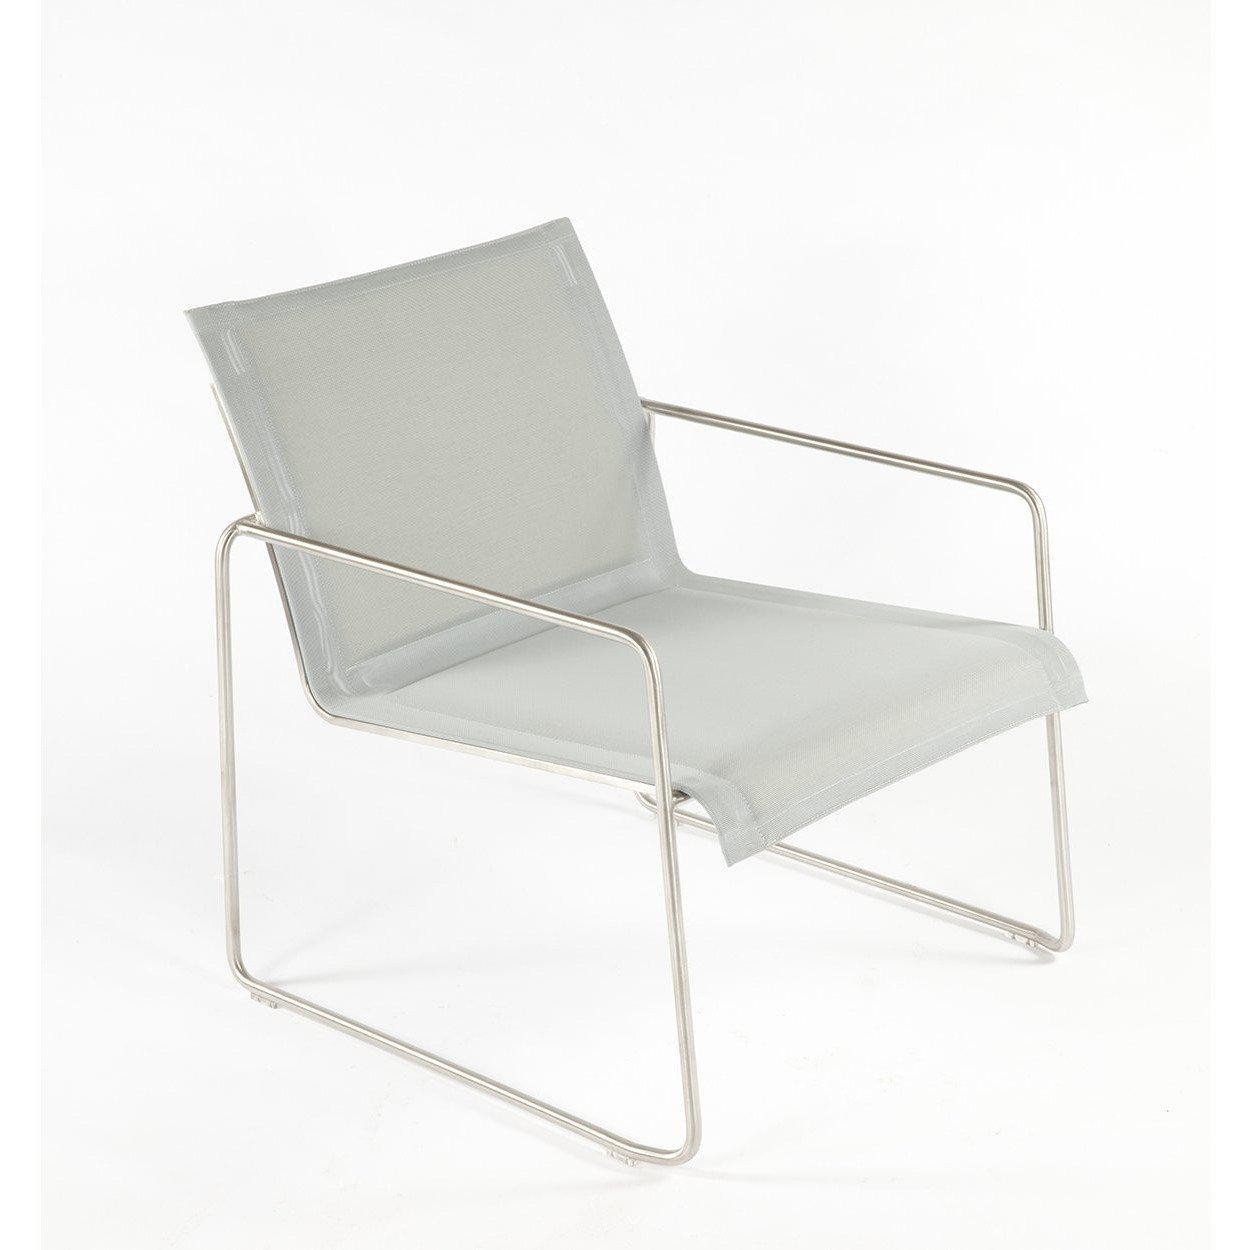 [FCC0710SILVER] The Dynamic Lounge Chair SALE